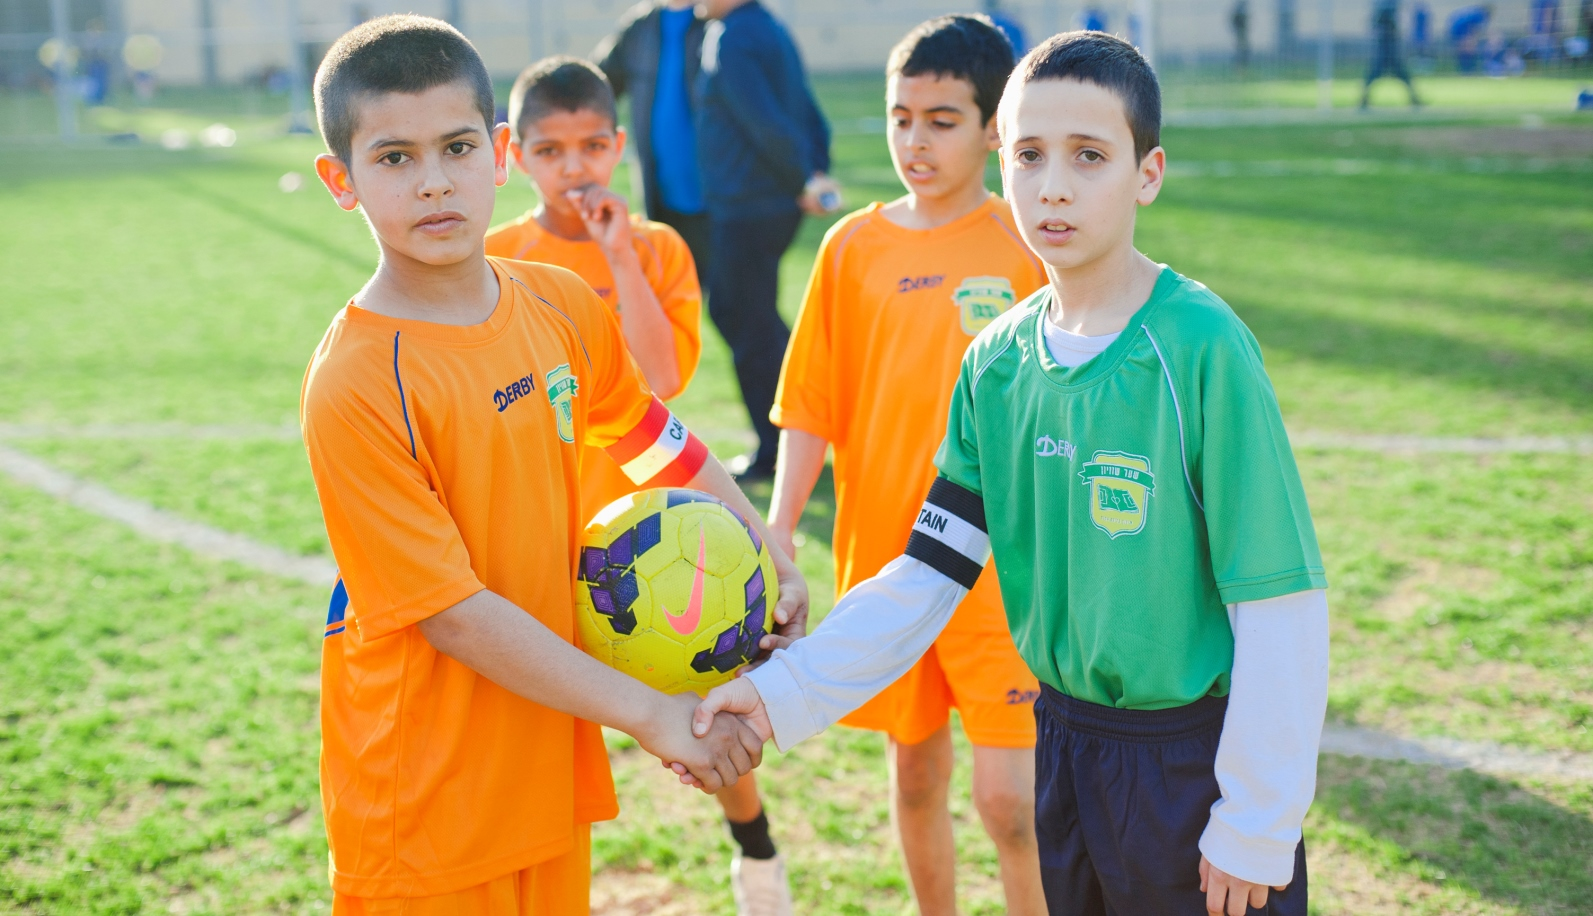 """Making new friends """"is so much more than a game,"""" says one Arab participant in The Equalizer. Photo: courtesy"""